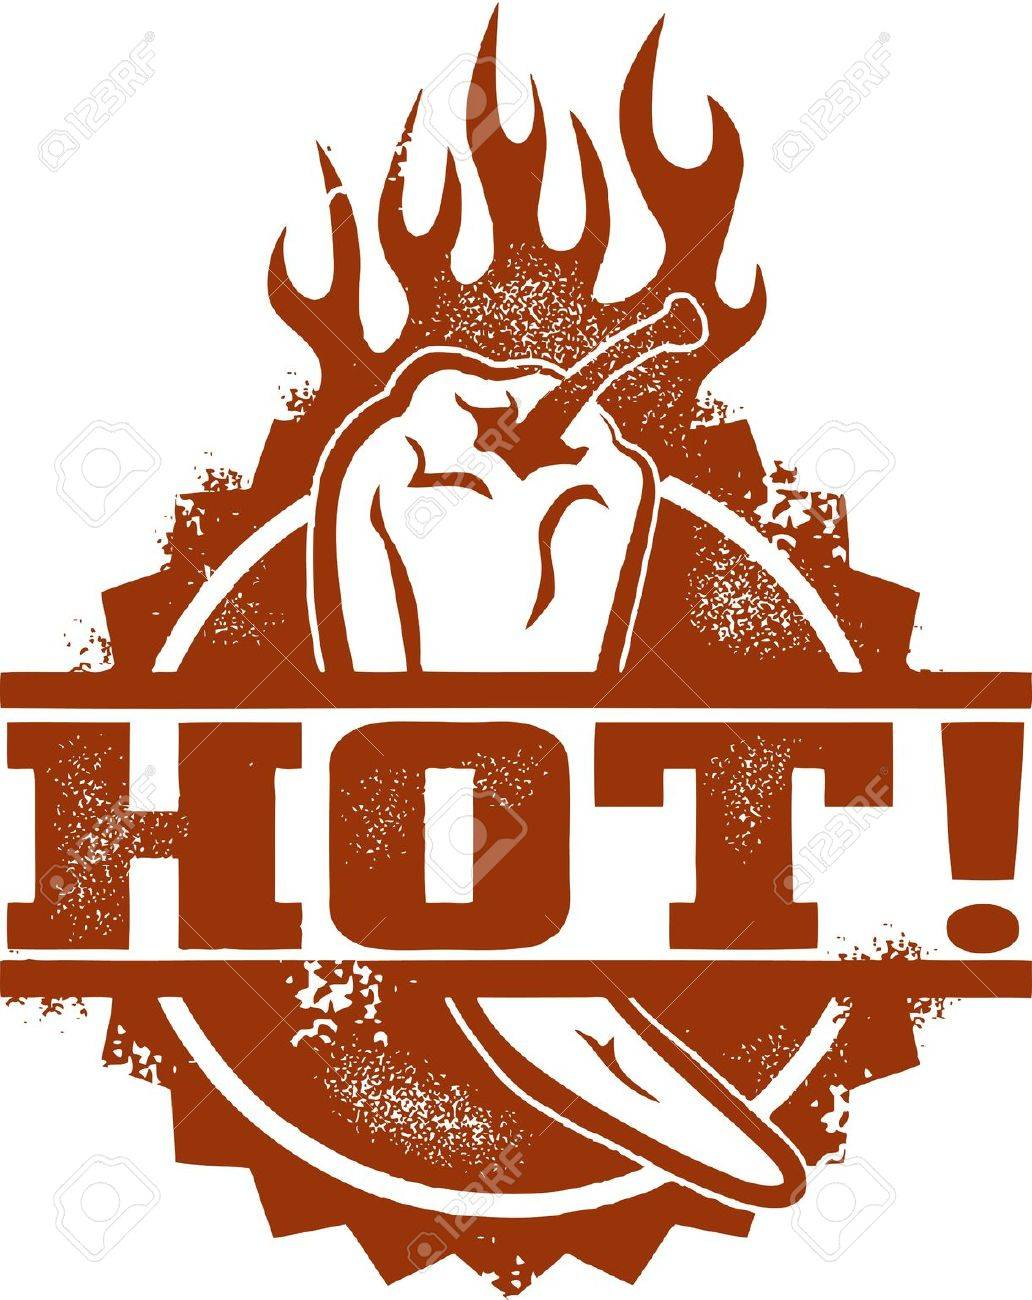 Hot Chili Pepper Stock Vector - 14651237